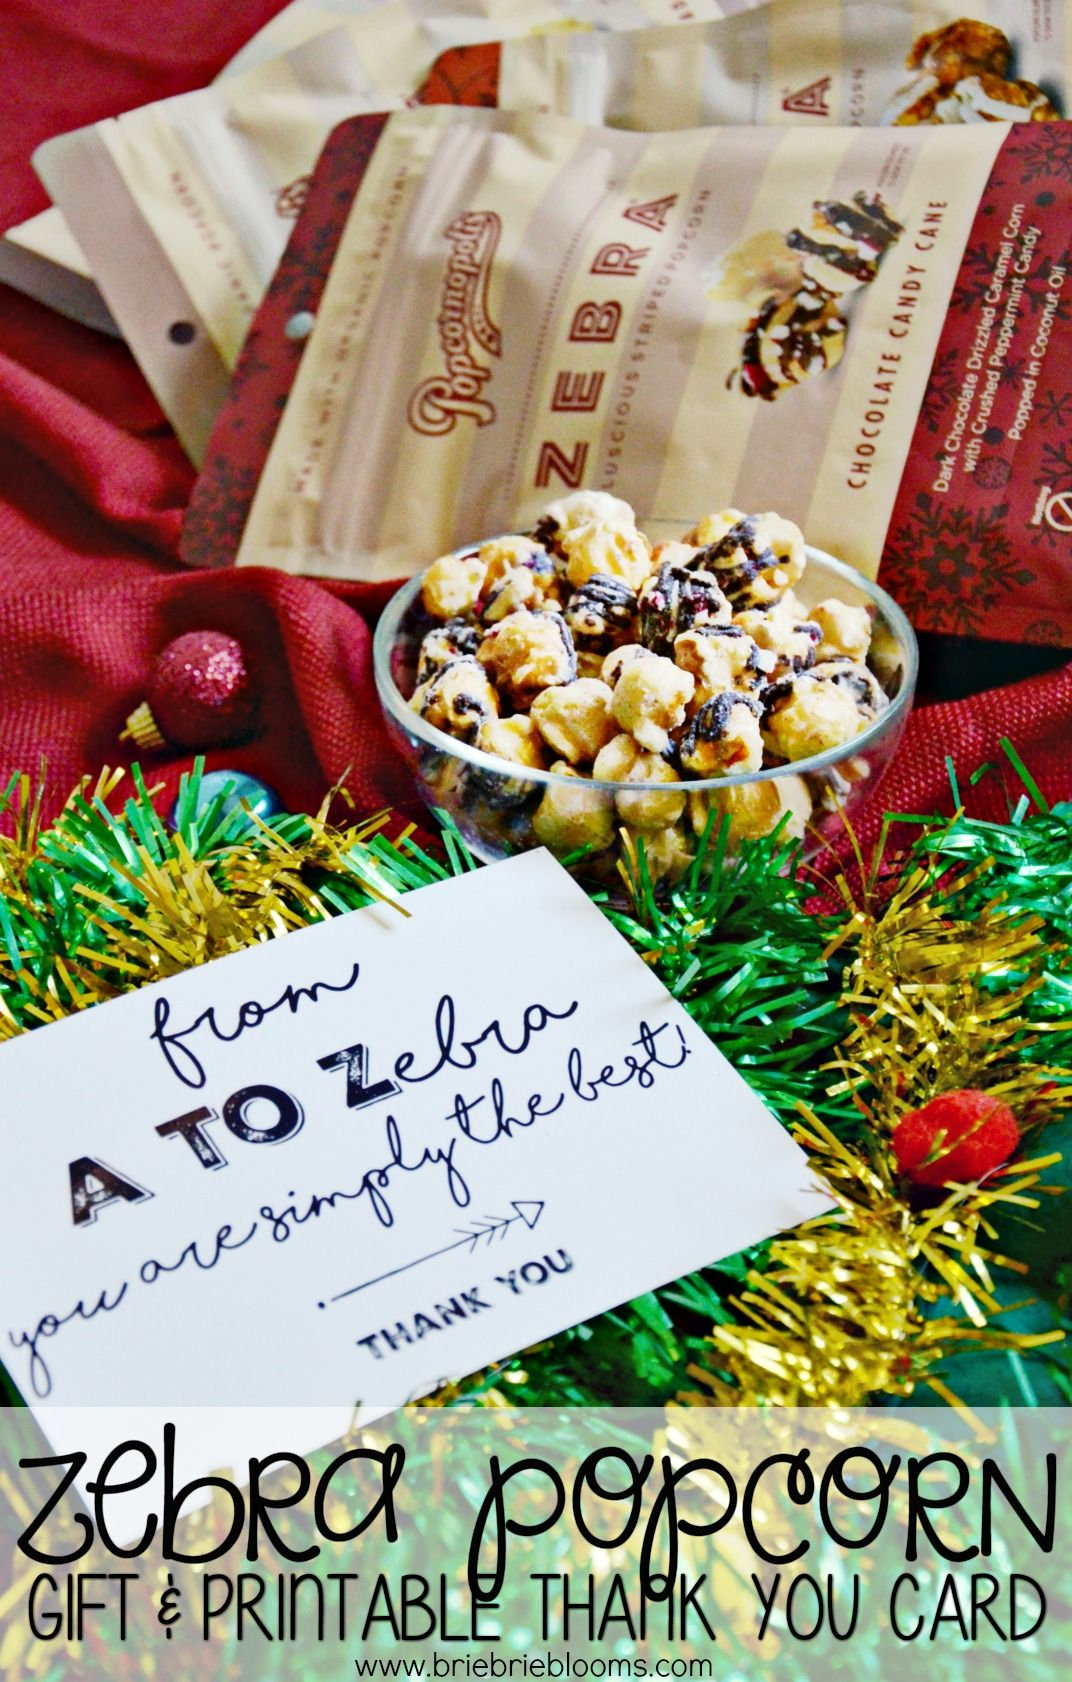 Zebra Popcorn Holiday Gift Ideas Pinterest Stardust Caramel With A Printable Thank You Card Is The Perfect Easy This Season Print At Home And For Quick